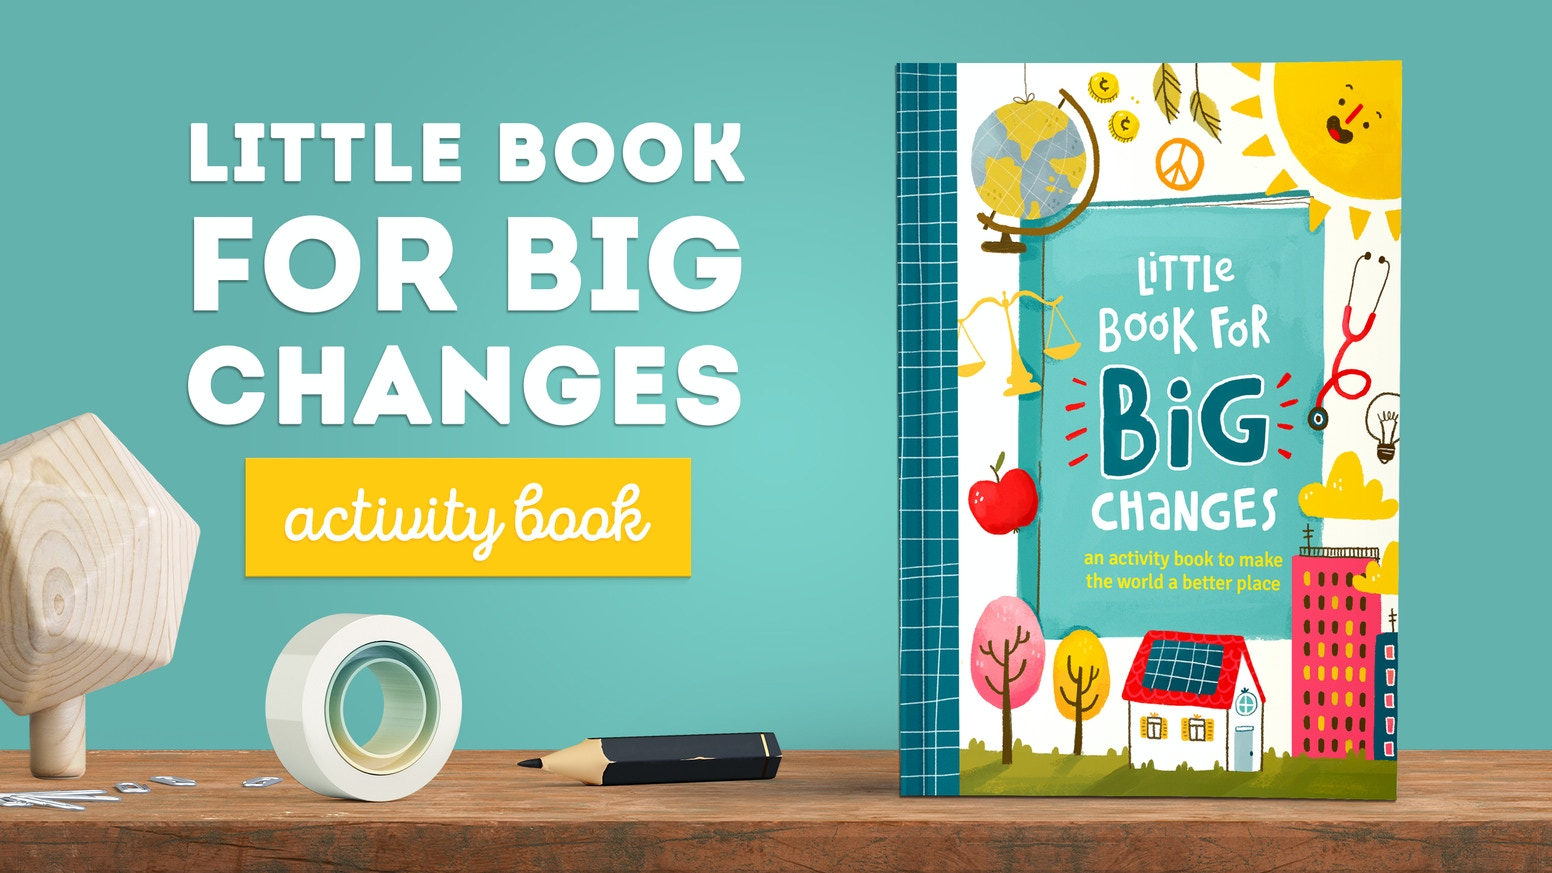 Little Book for Big Changes: Kid's Activity Book by Little Big